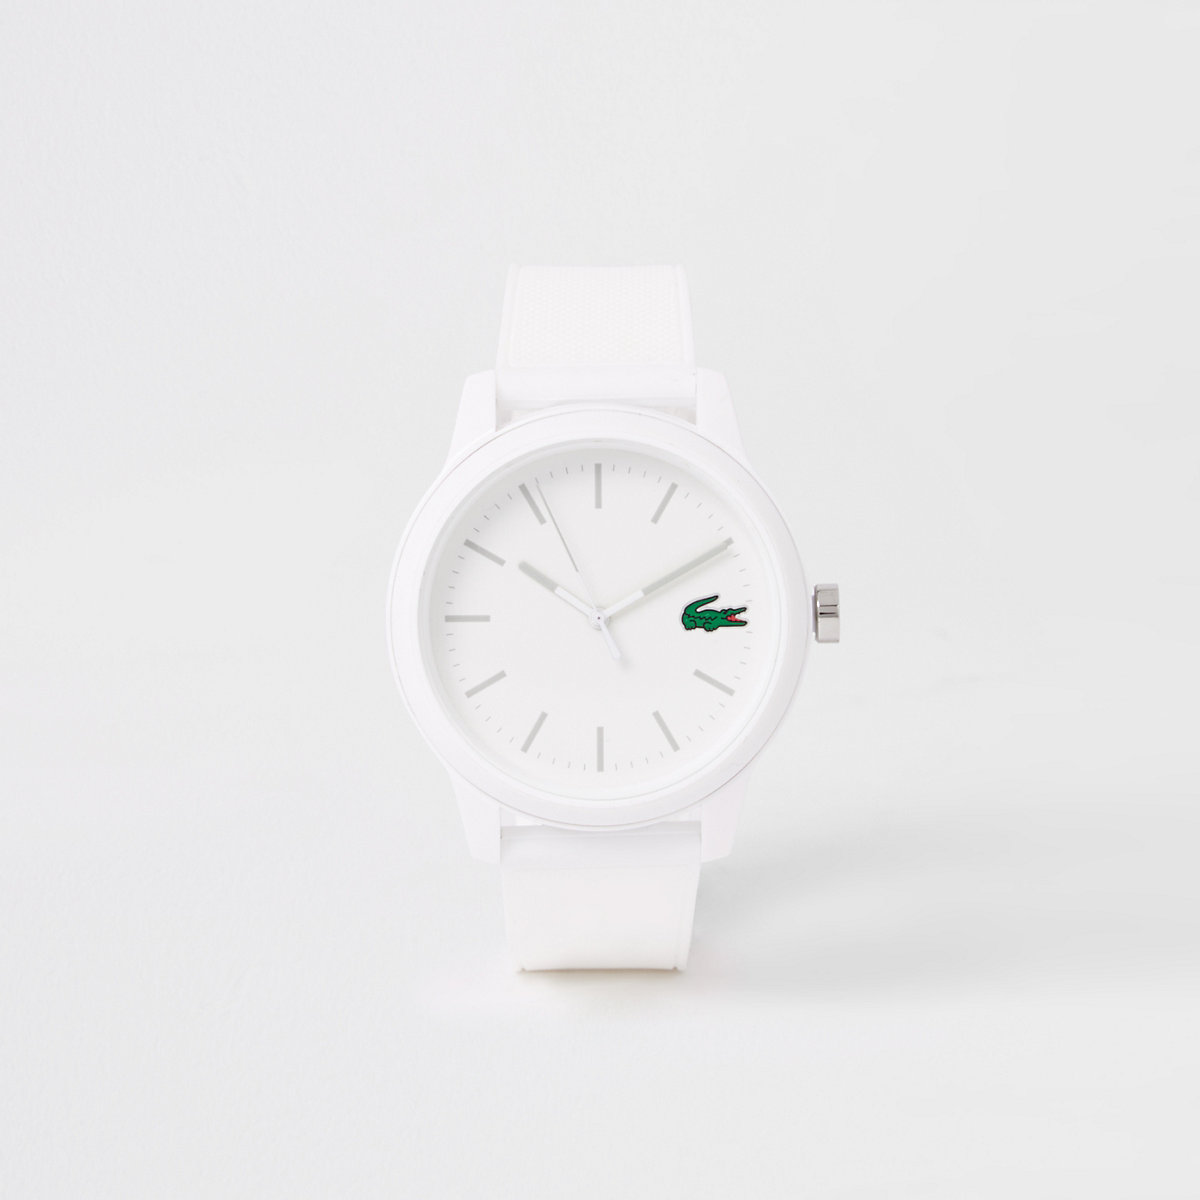 Lacoste white 12.12 silicone strap watch